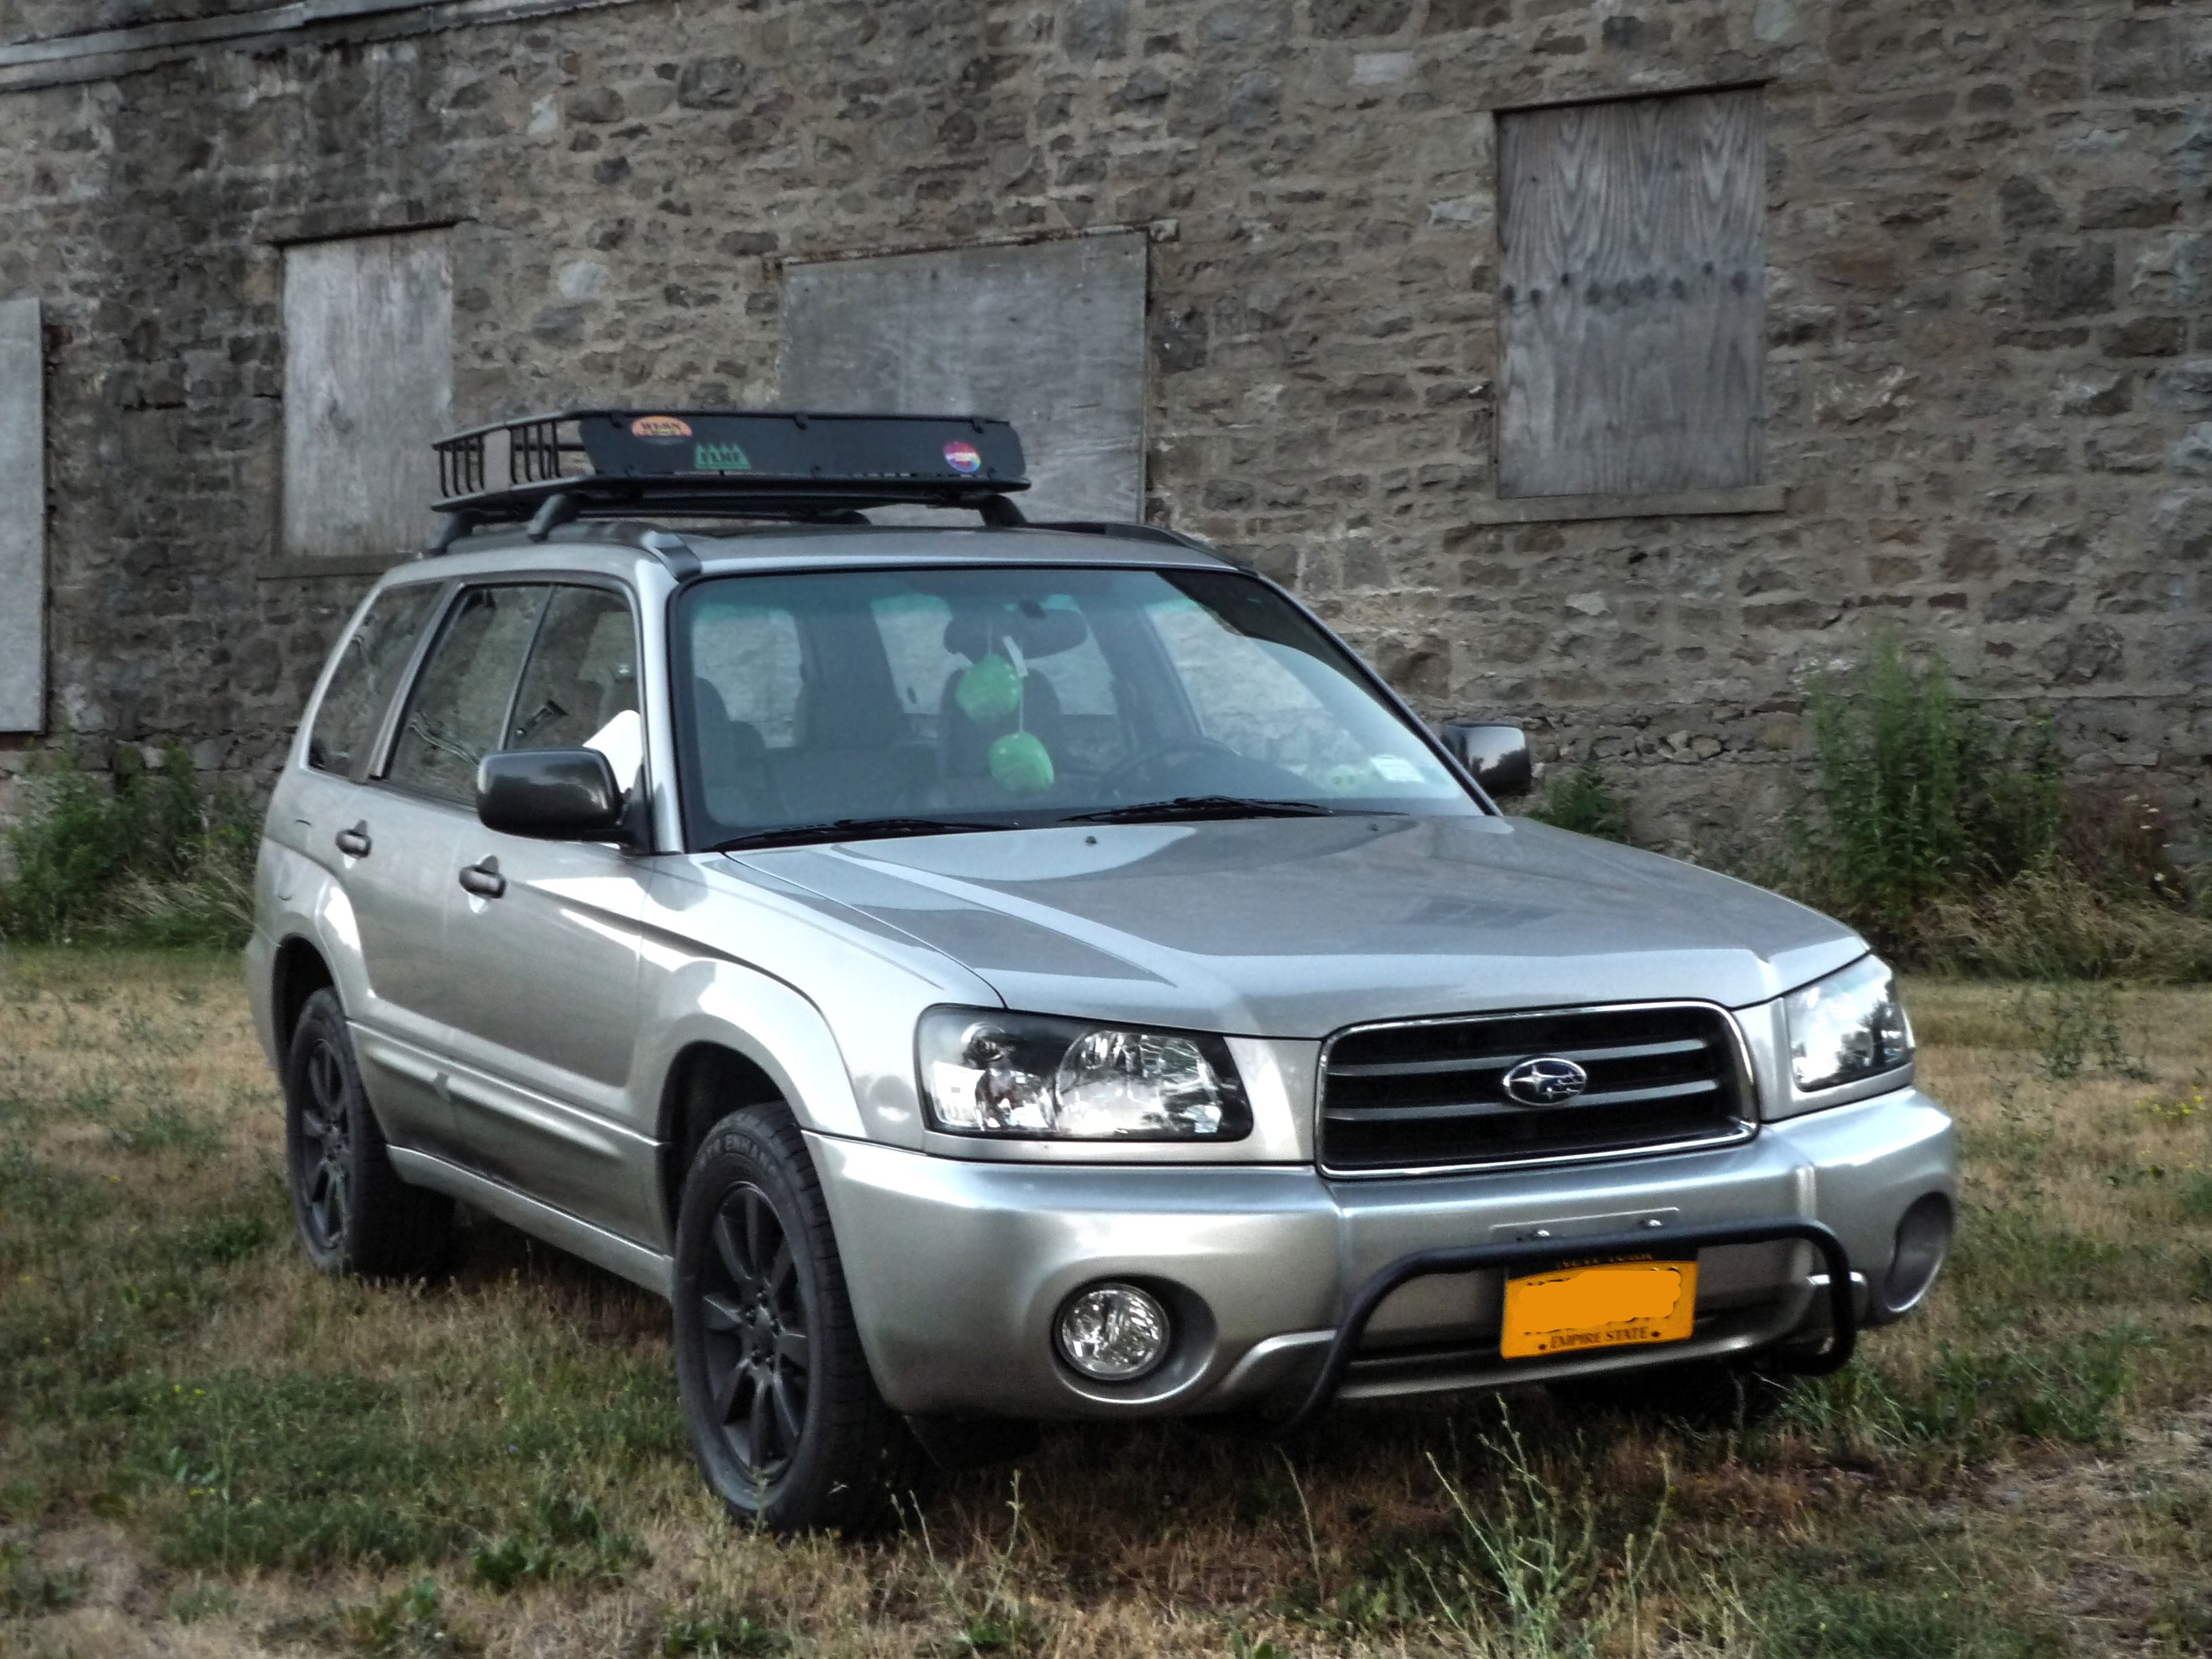 2005 Crystal Gray Metallic Subaru Forester Xs With Rally